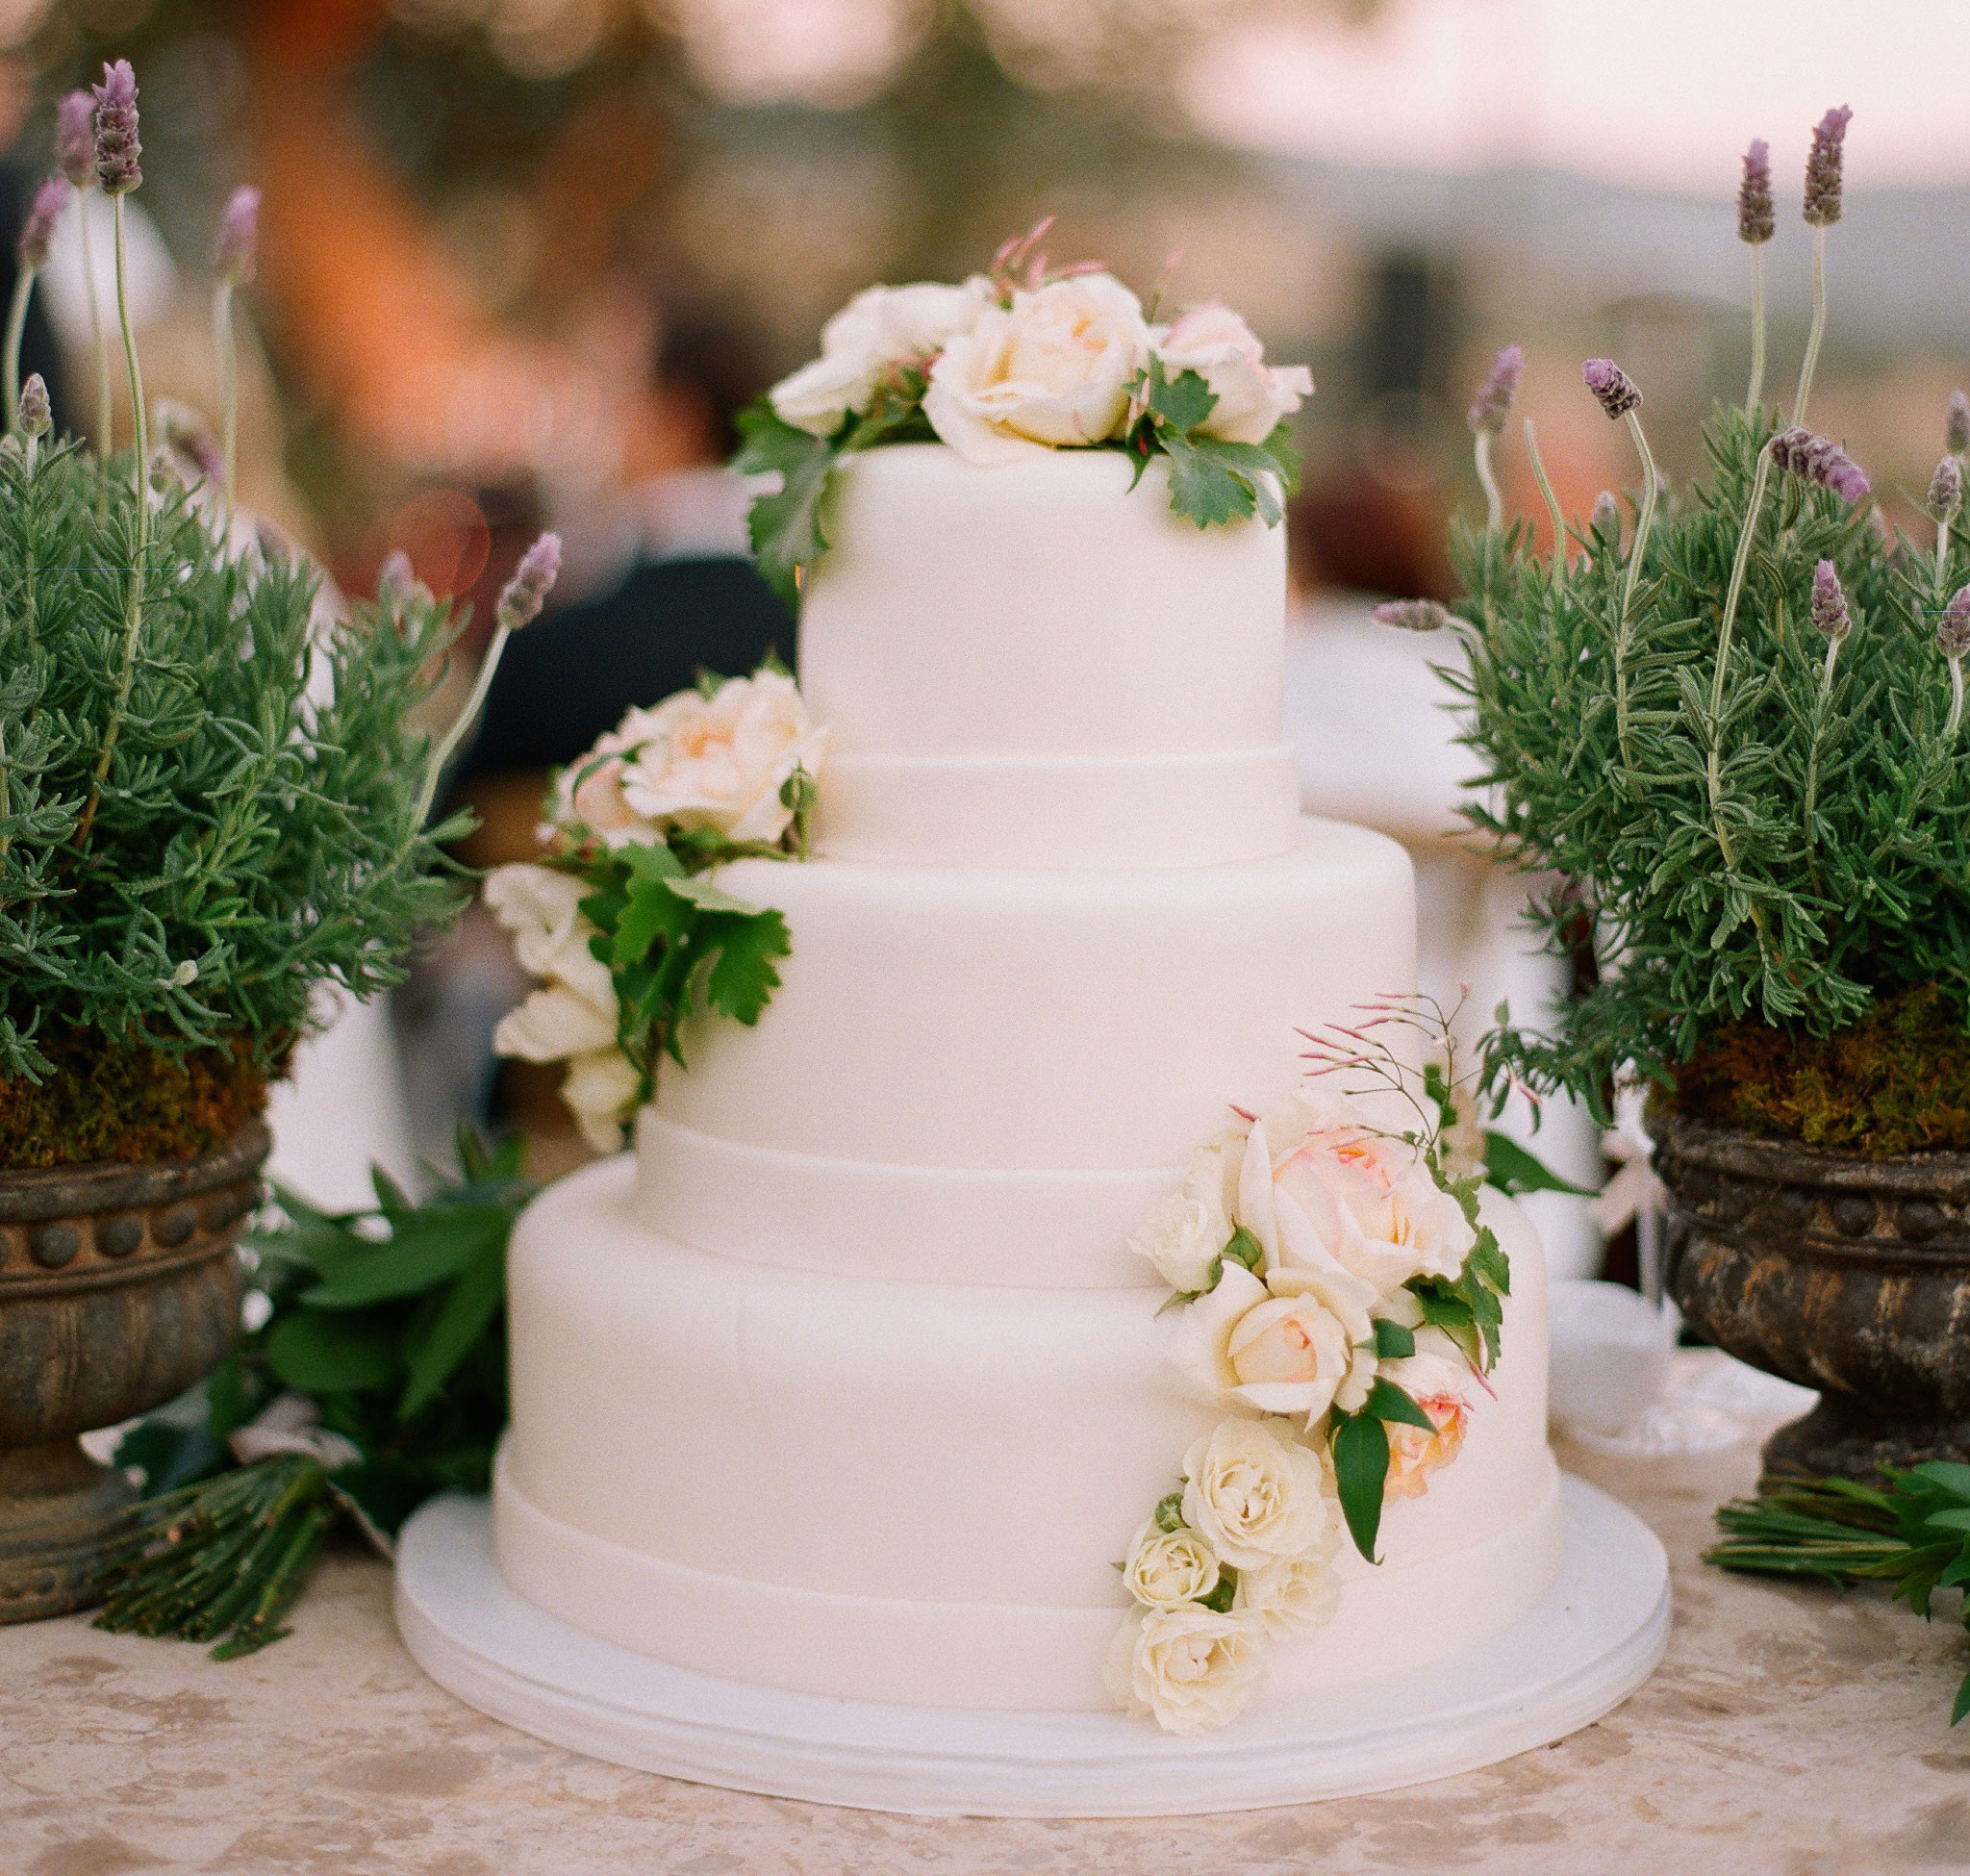 Fresh Flowers On Wedding Cakes  Wedding Cakes 20 Ways to Decorate with Fresh Flowers